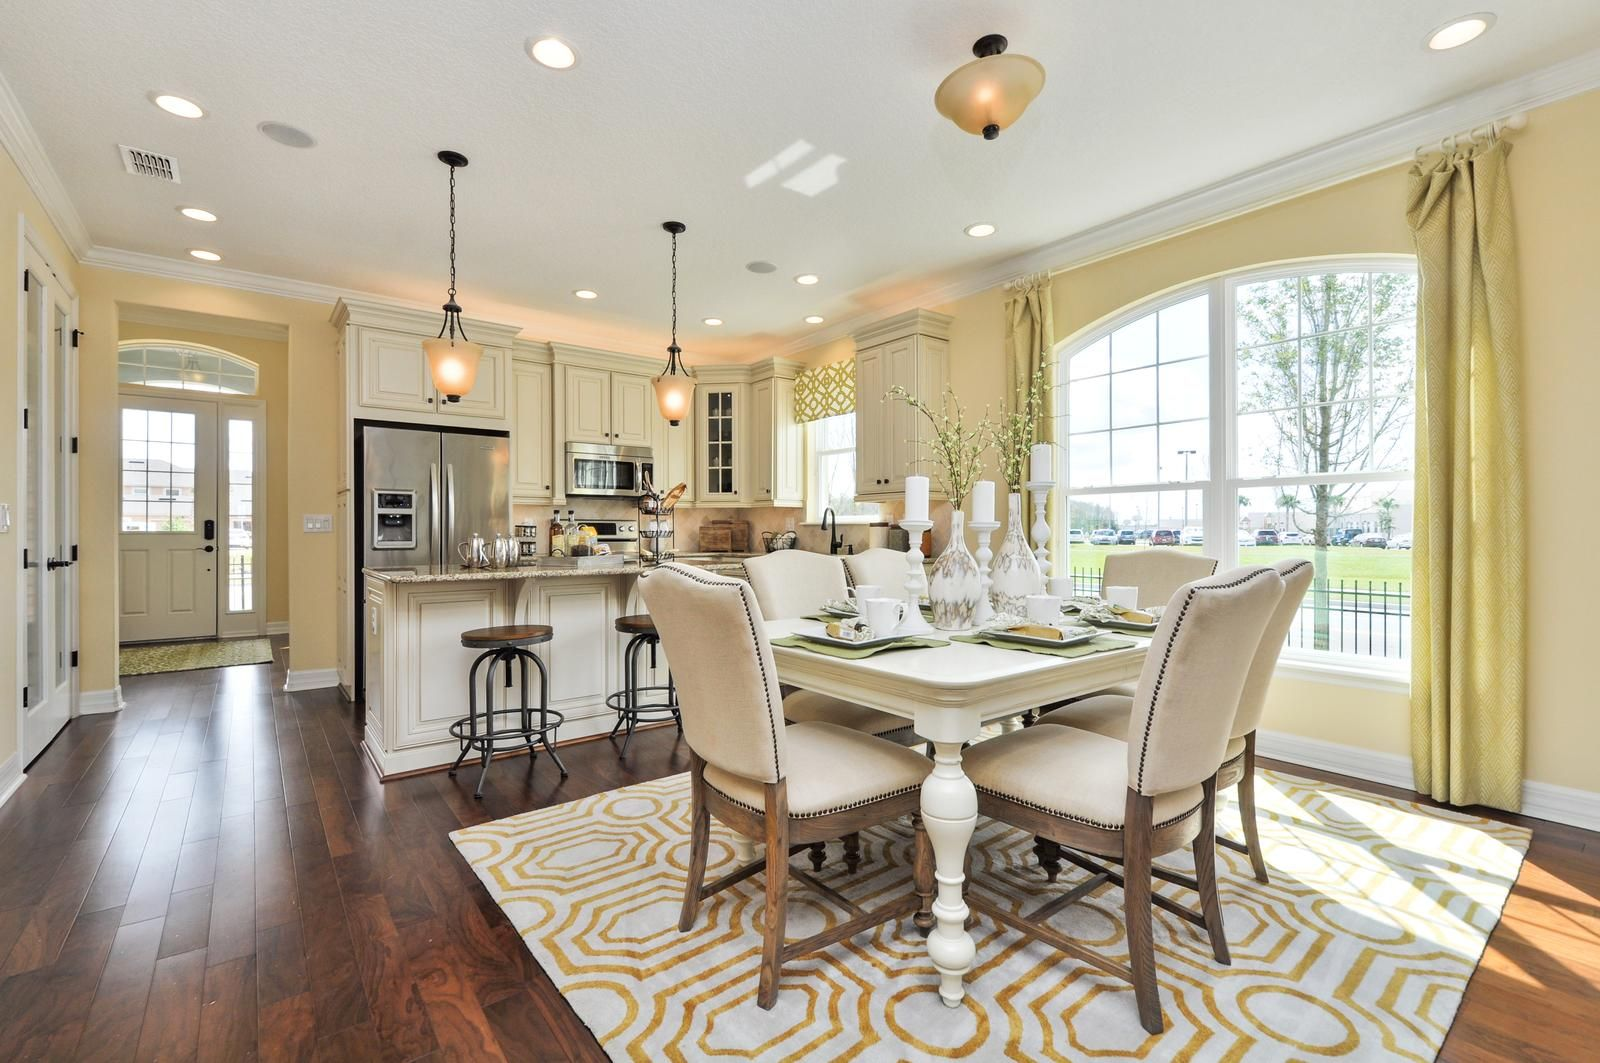 . Orlando Model Homes Orlando   Kitchen   Model homes  Home decor  Home